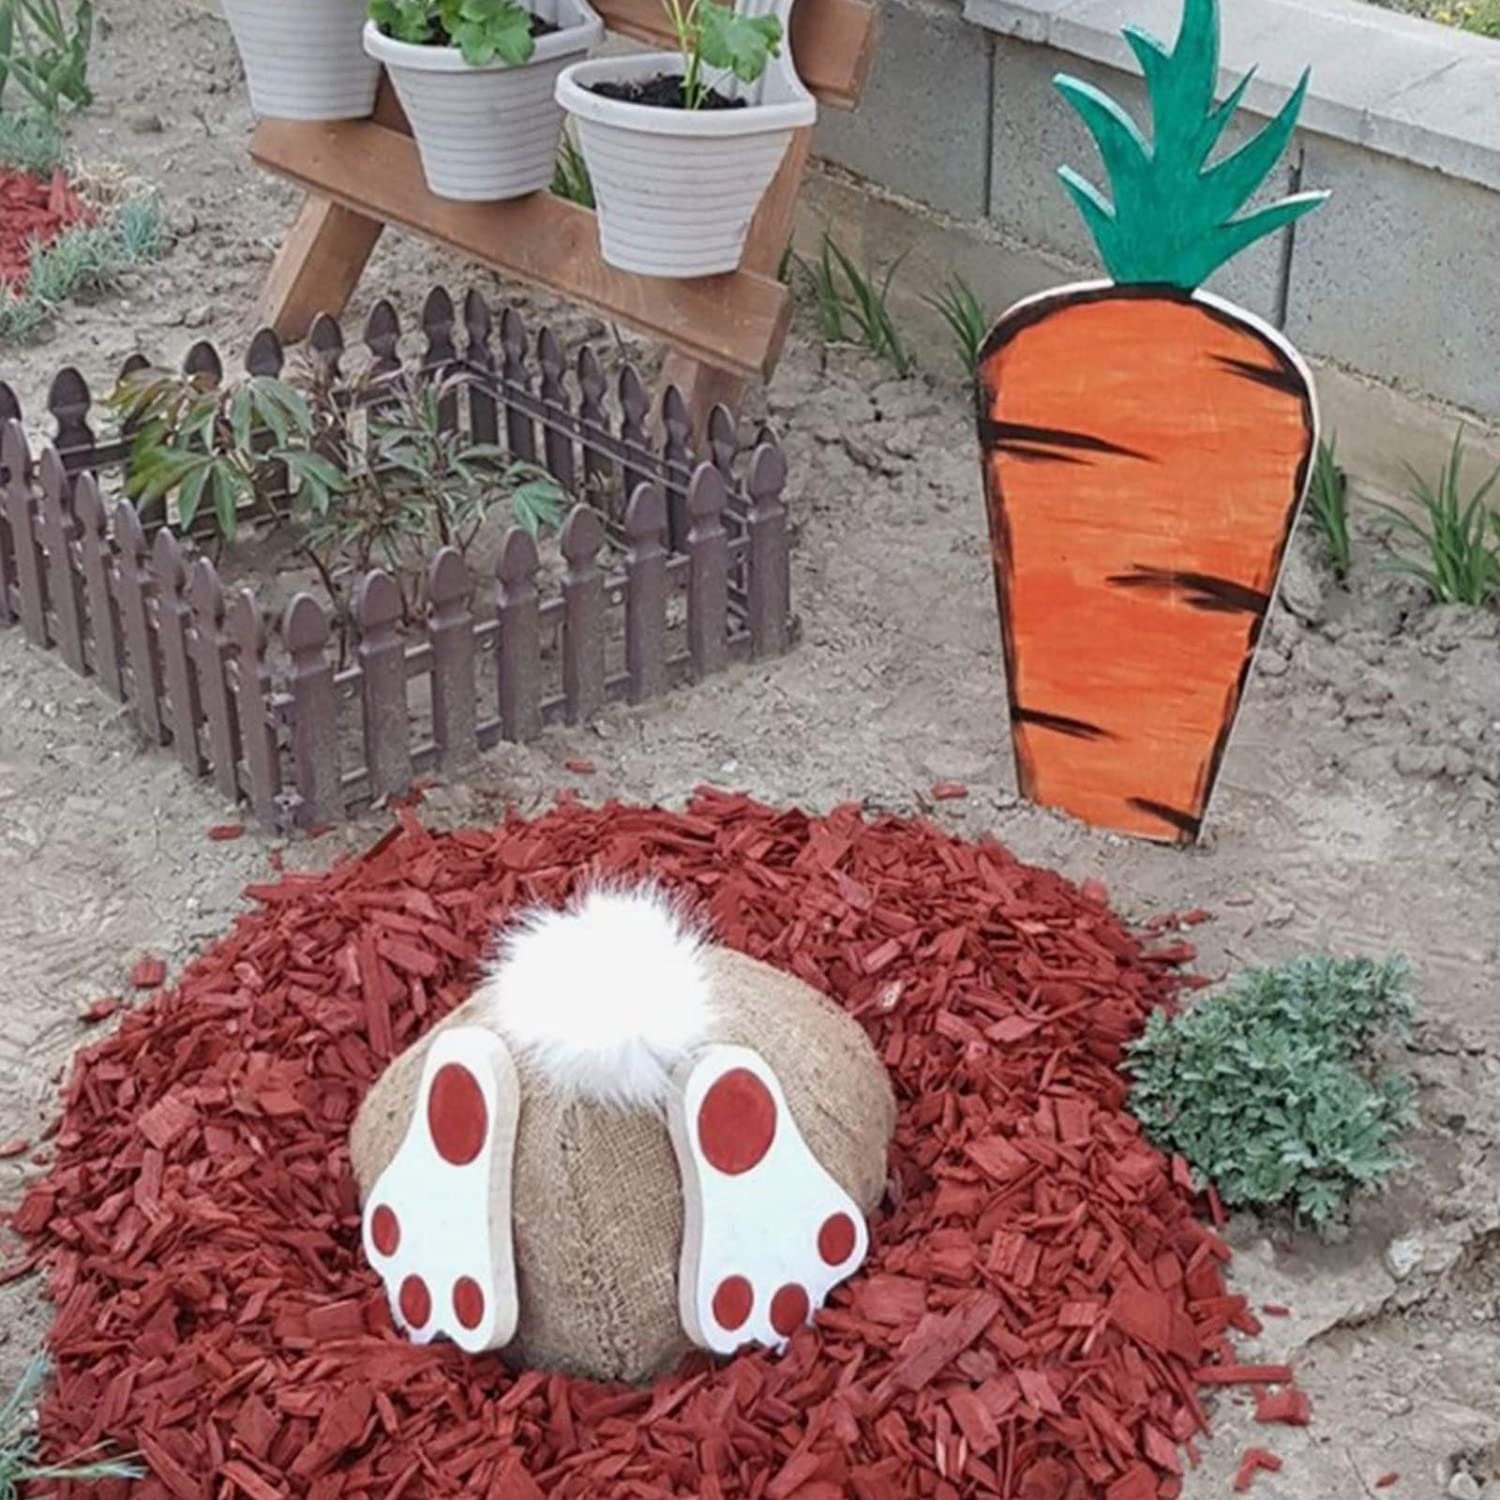 Outdoor garden easter Decorations And Easter Gifts   bunny carrot 【Bunny butt+Carrot】